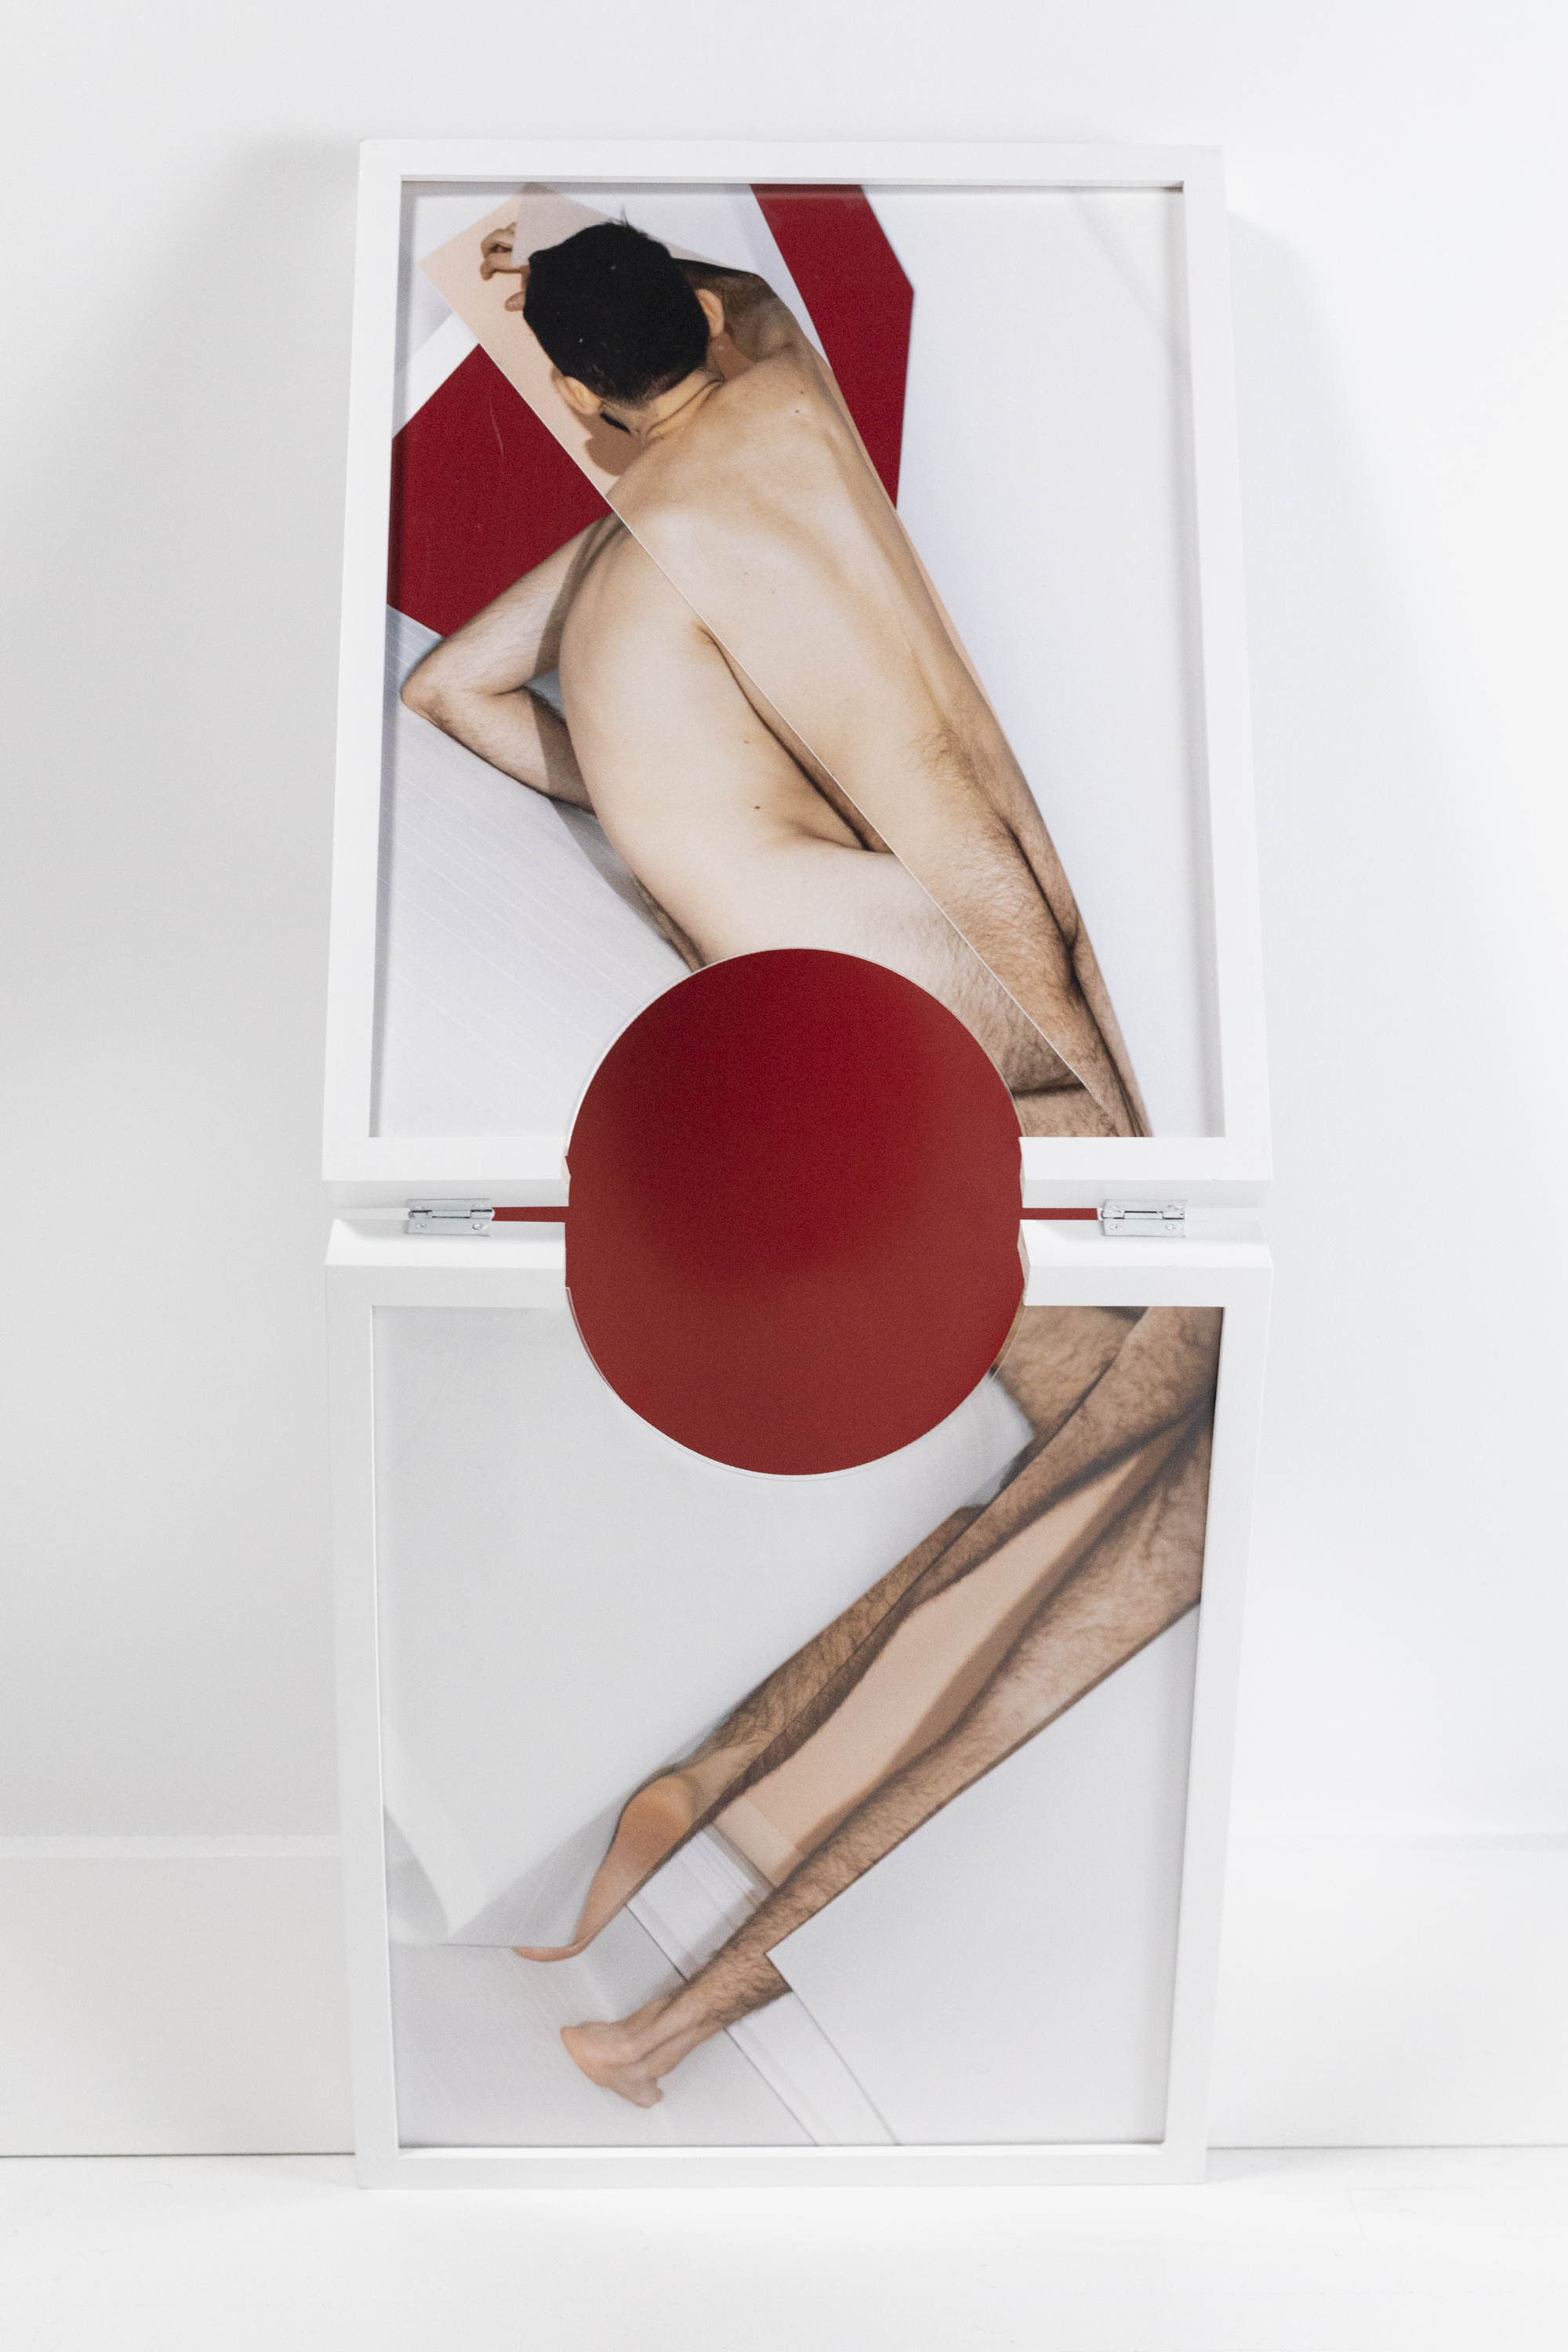 Body and Blood   2019  Inkjet print with red wall detail  17.5 x 43 x 6 inches